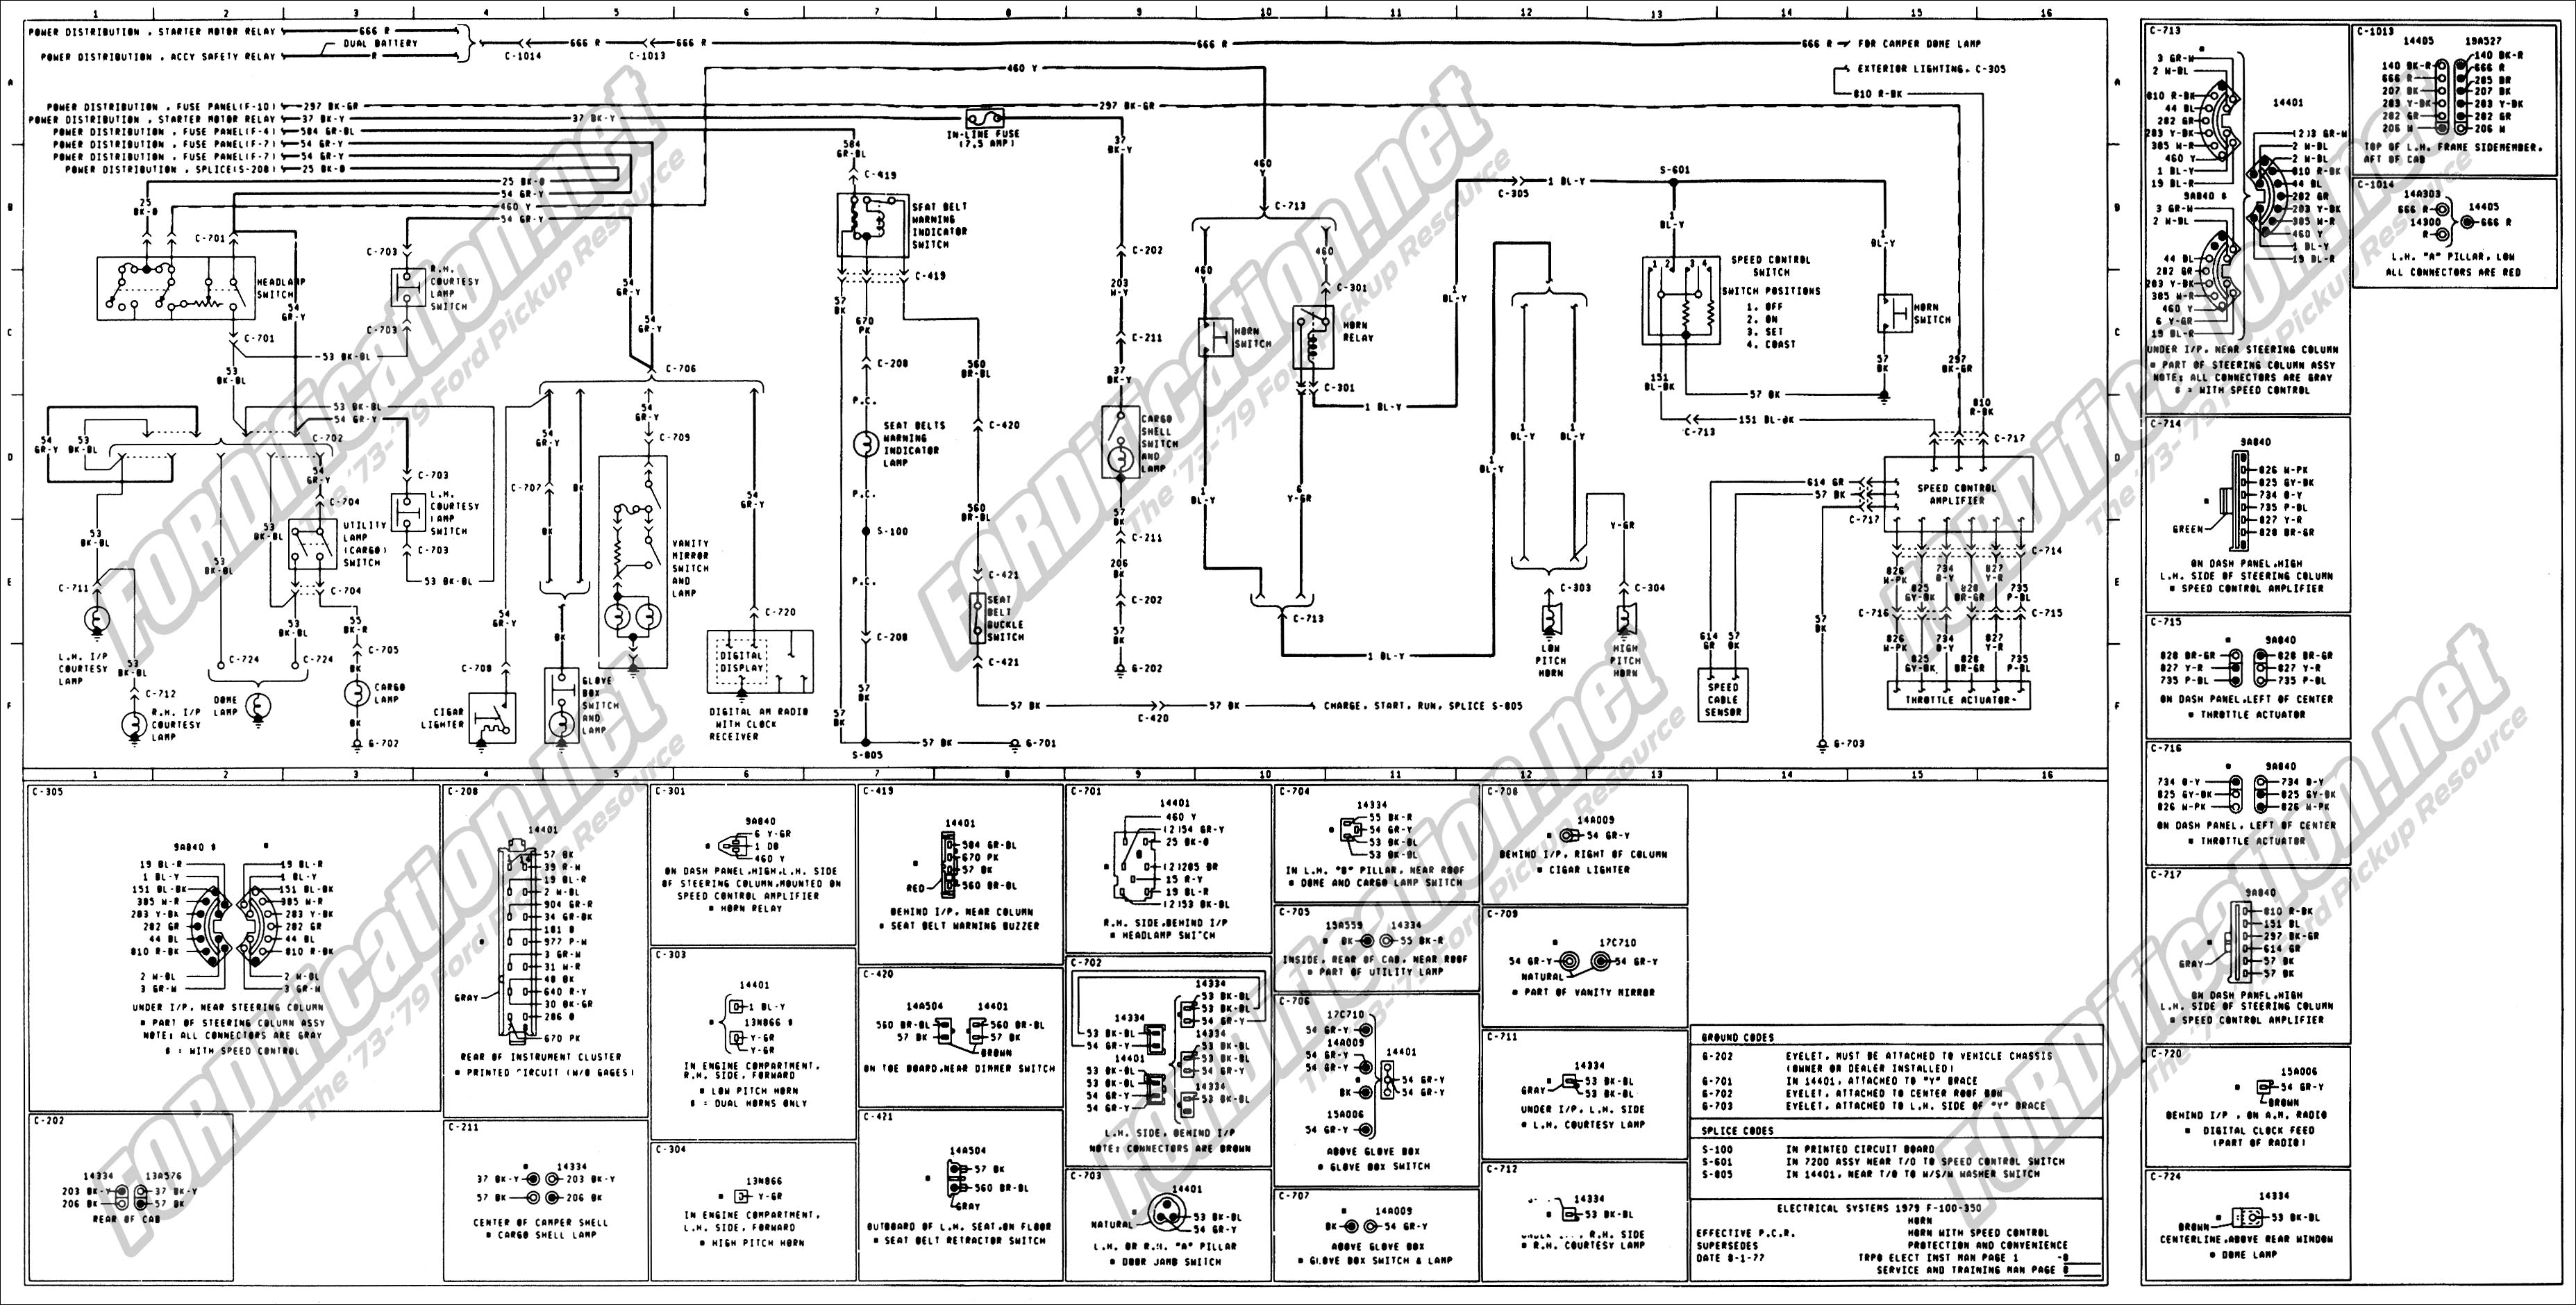 Ford Truck Starter Diagram Books Of Wiring 2000 F 150 5 4l Engine For 79 Simple Rh David Huggett Co Uk F150 2005